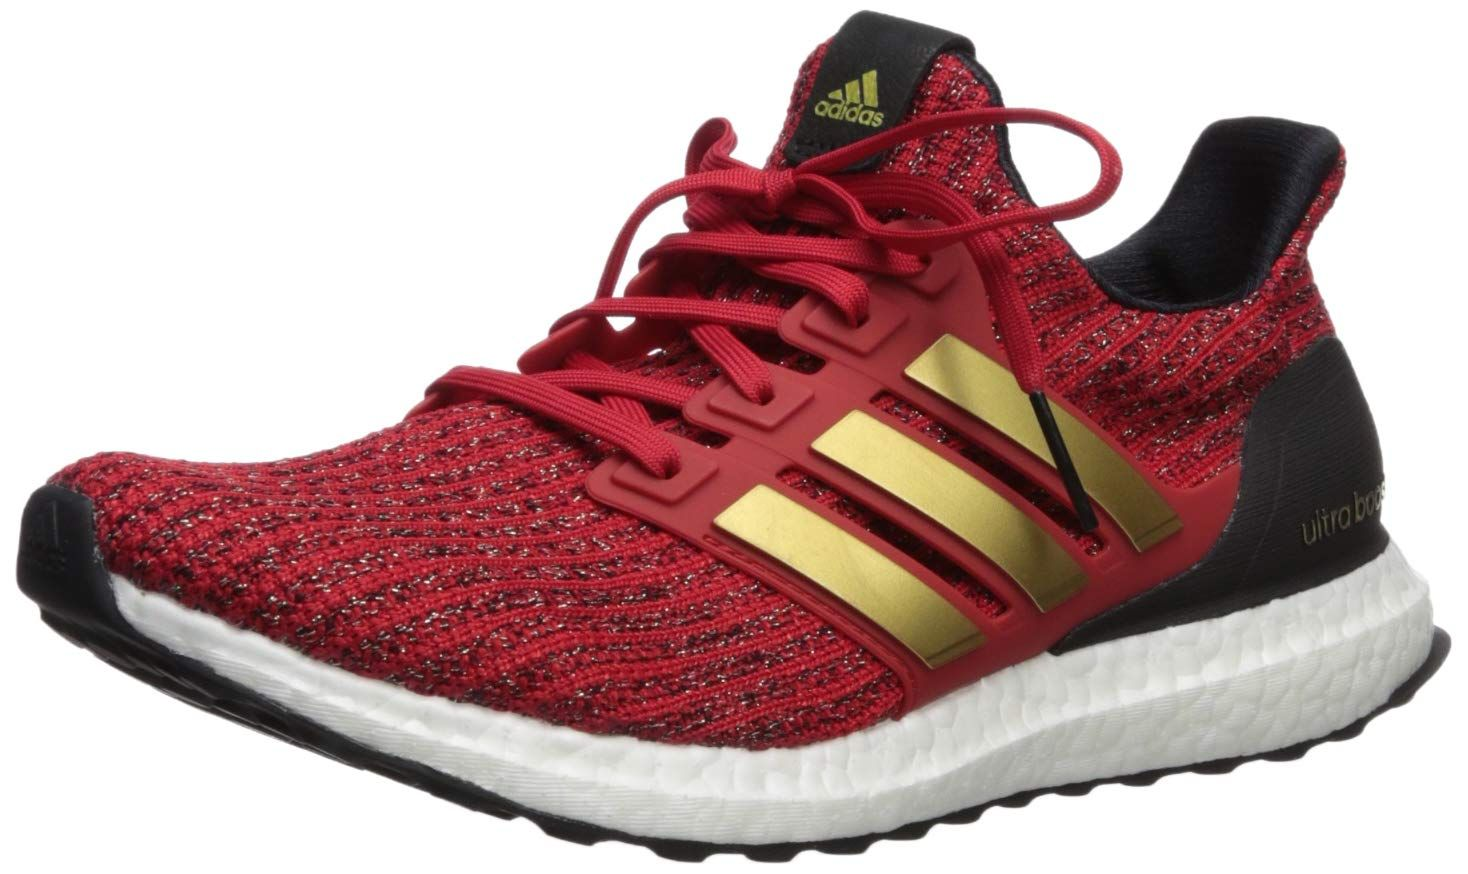 adidas x Game of Thrones Women's Ultraboost Running Shoes in